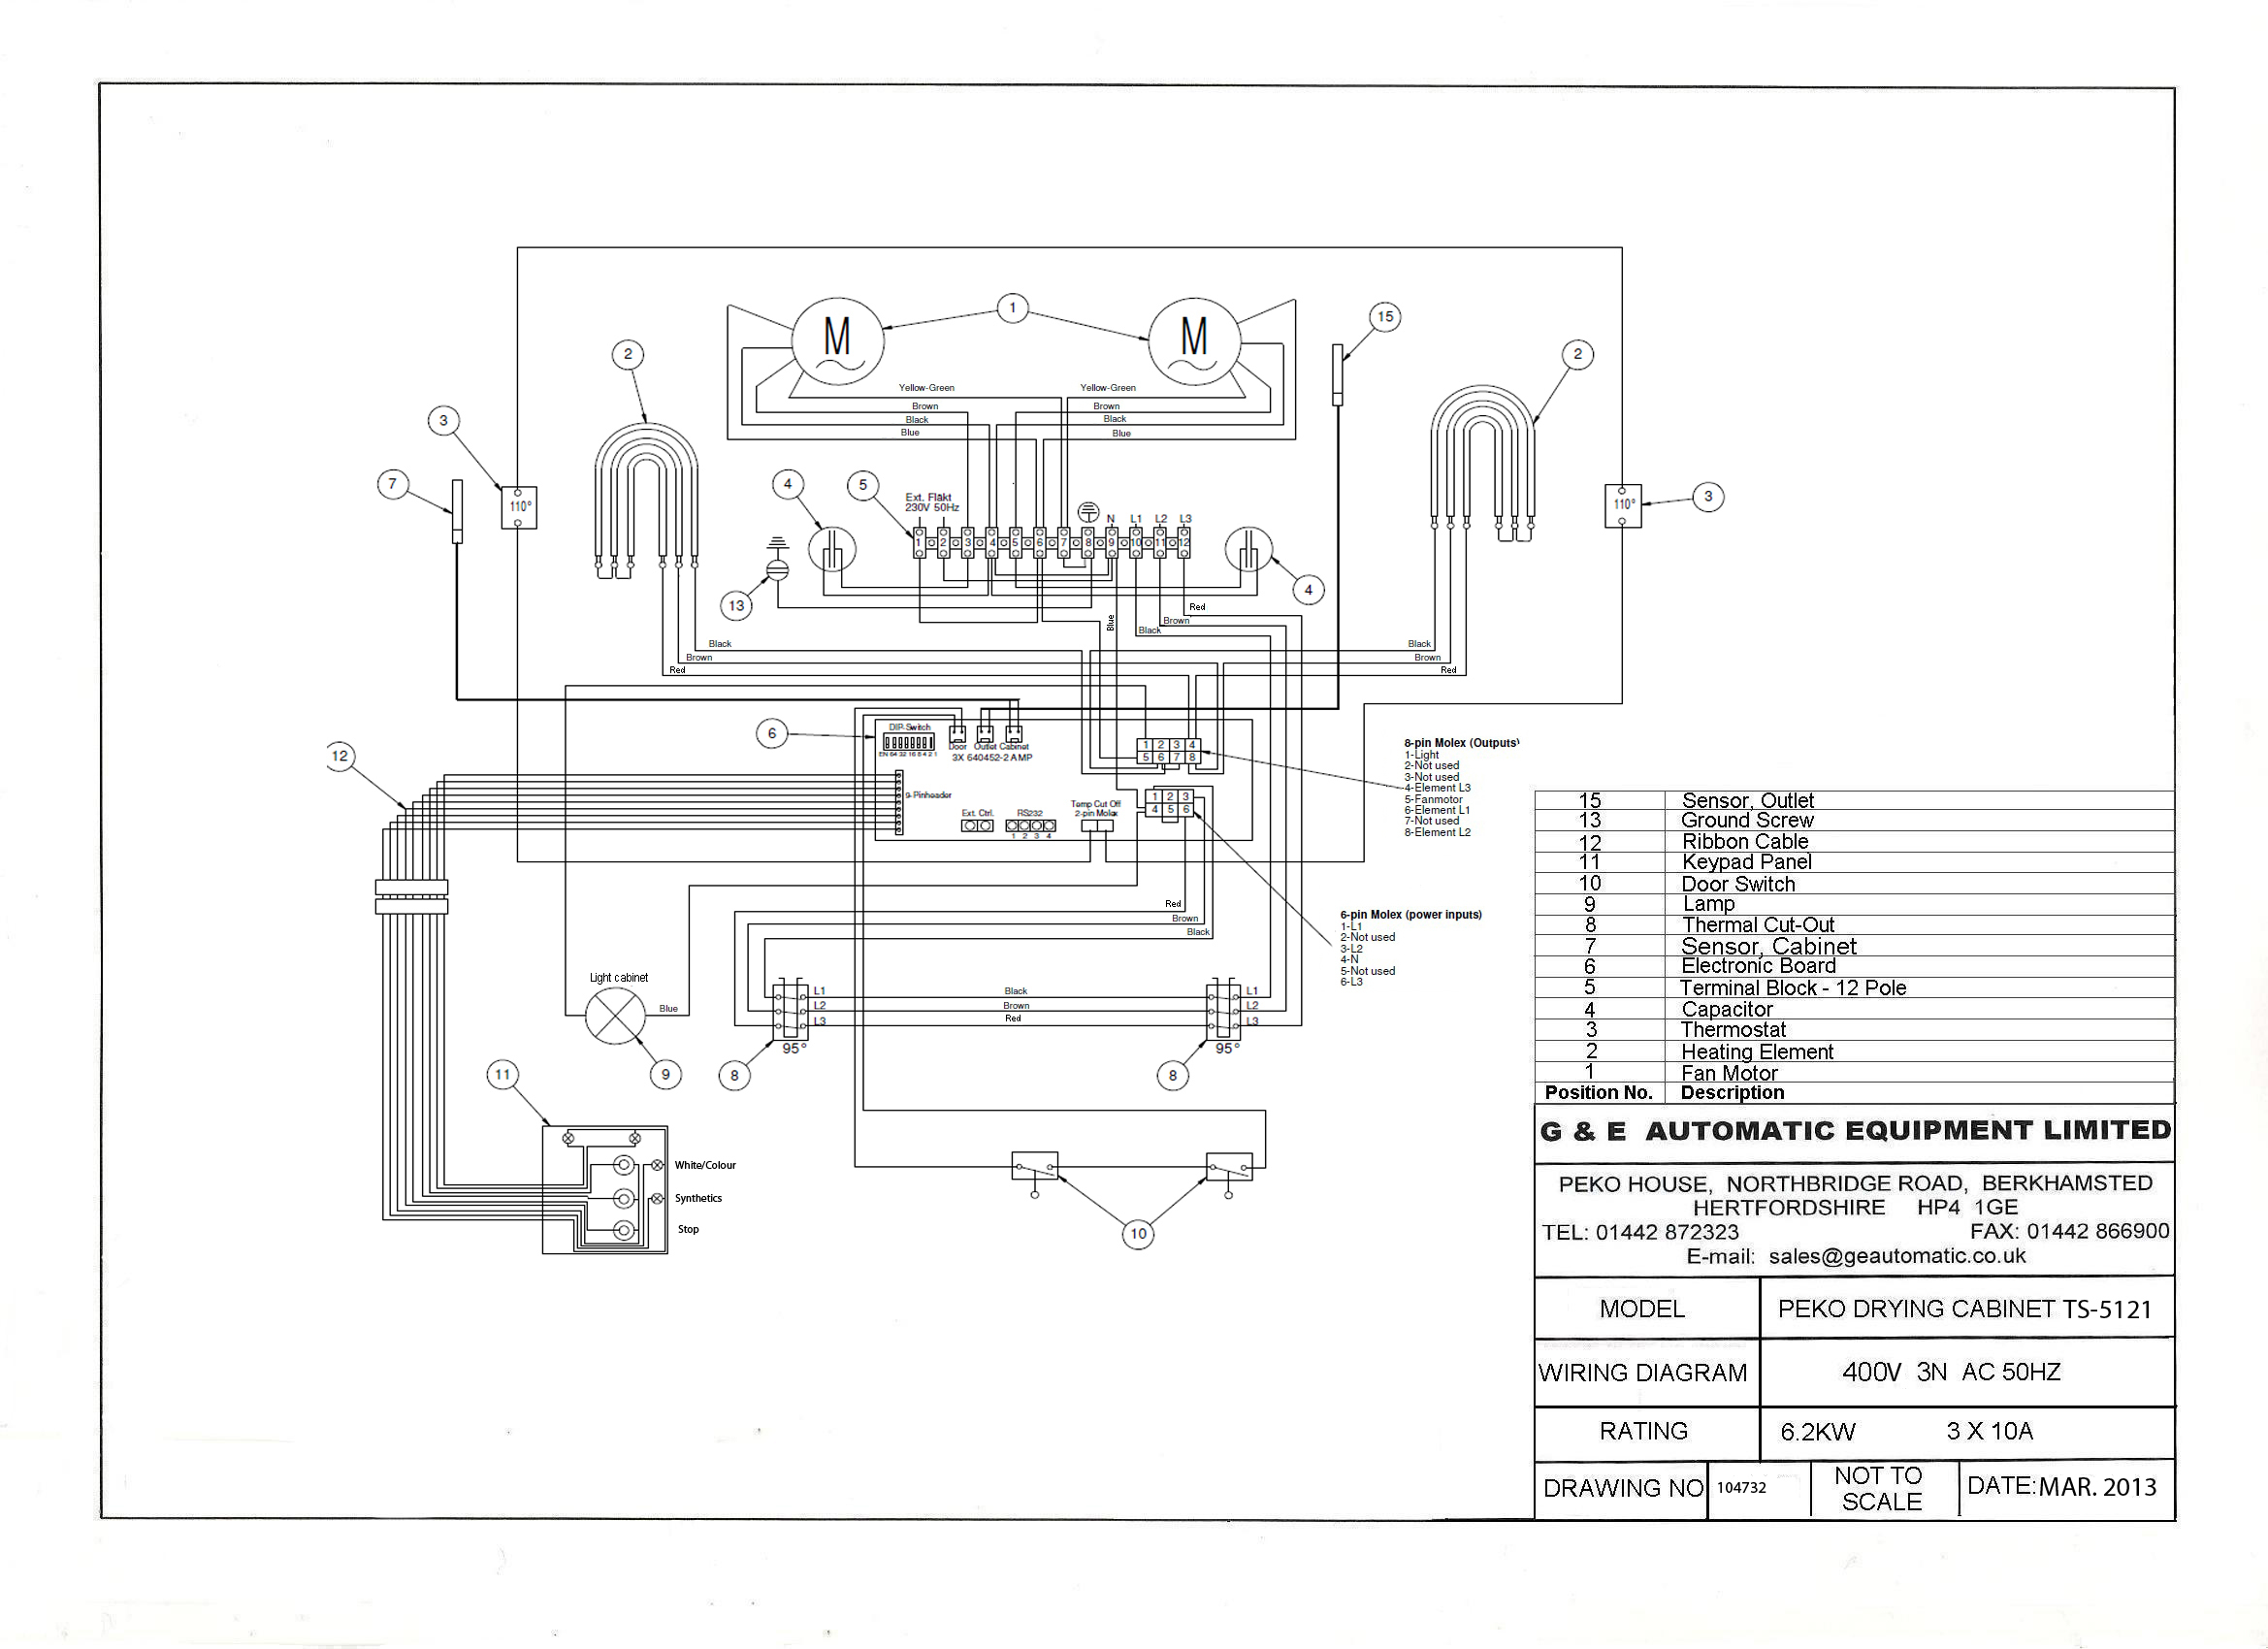 Control Cabinet Wiring Diagram | Wiring Diagram Database on hammond power products, hammond power solutions distribution, hammond power transformers fortress, hammond power systems, hammond power solutions transformer, hammond transformer wiring diagrams,